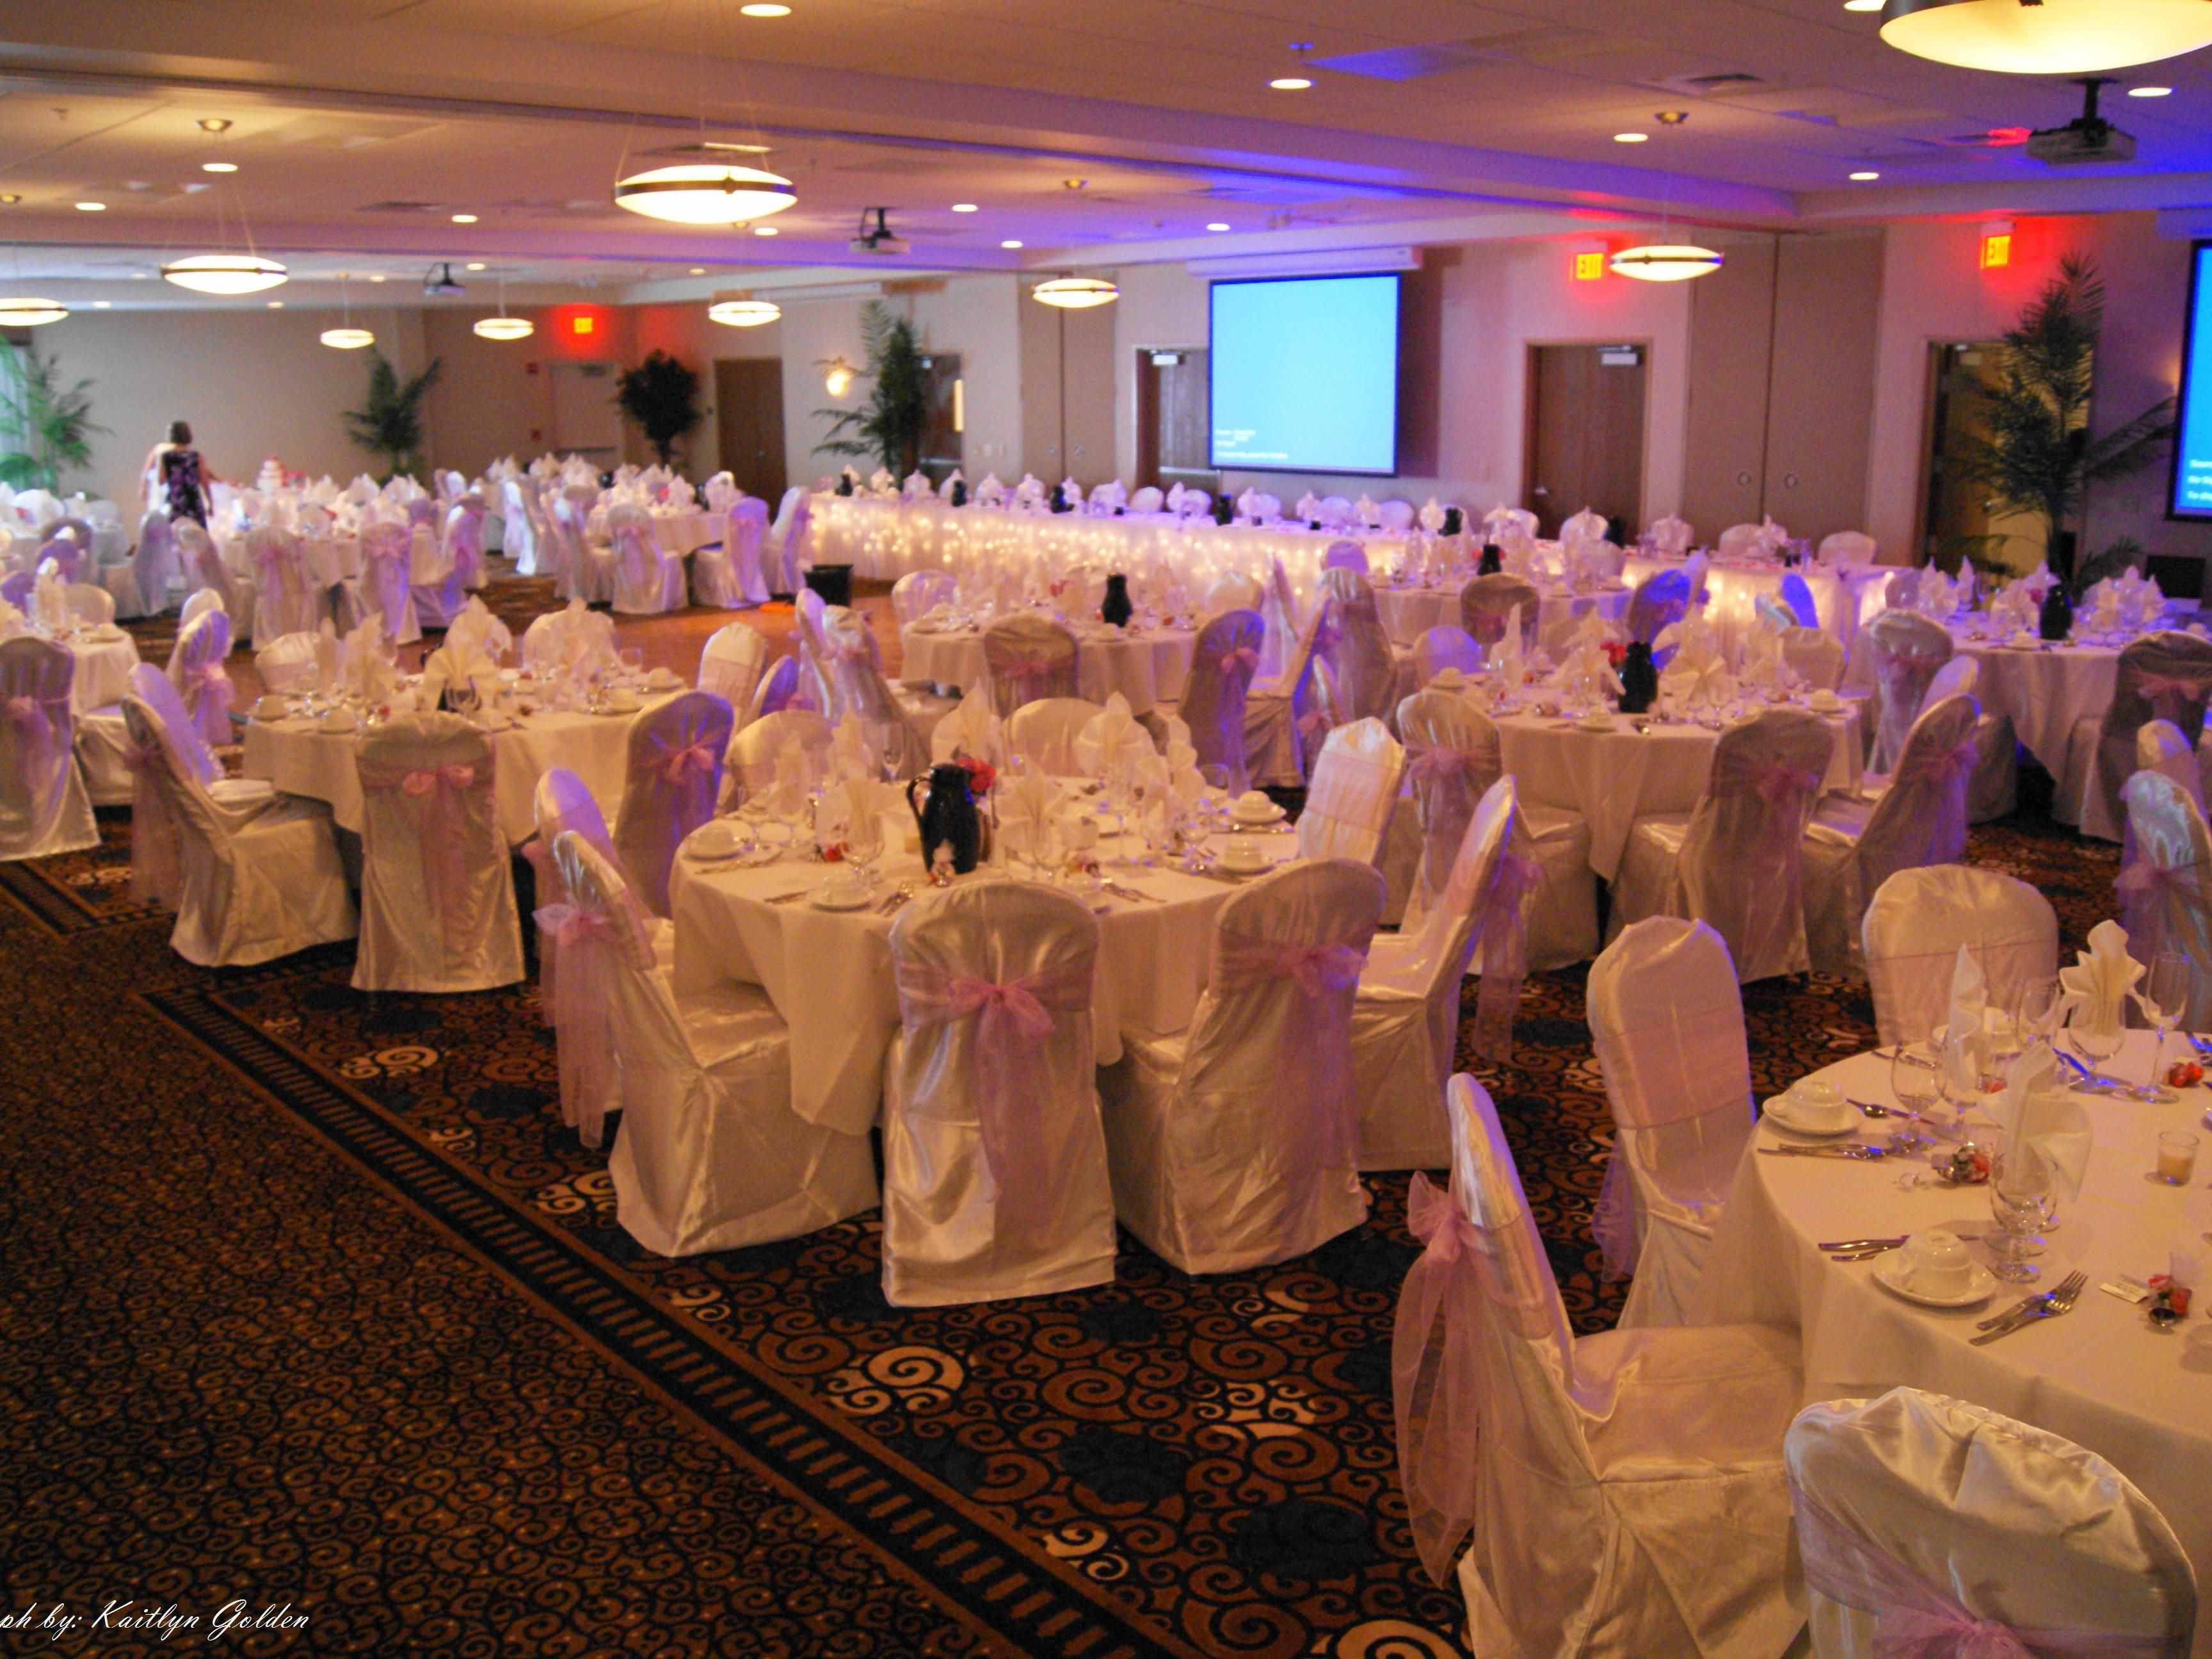 Three ballrooms combined as one for a larger scale wedding